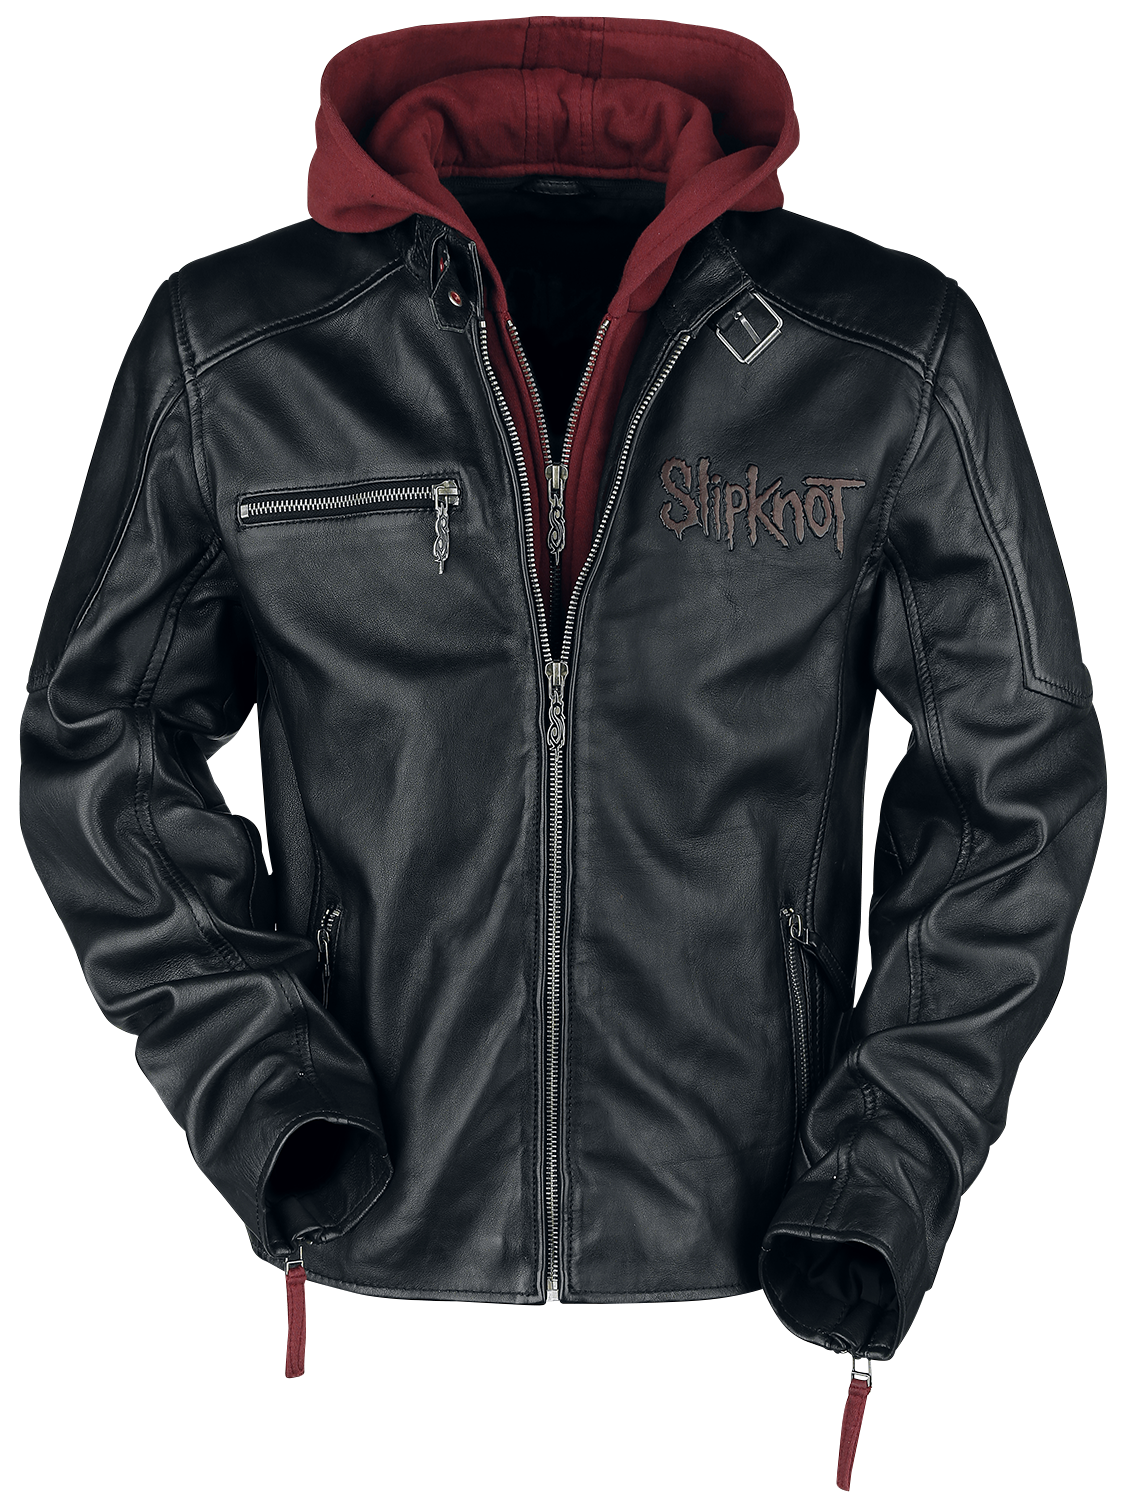 Slipknot - EMP Signature Collection - Lederjacke - schwarz| rot - EMP Exklusiv!